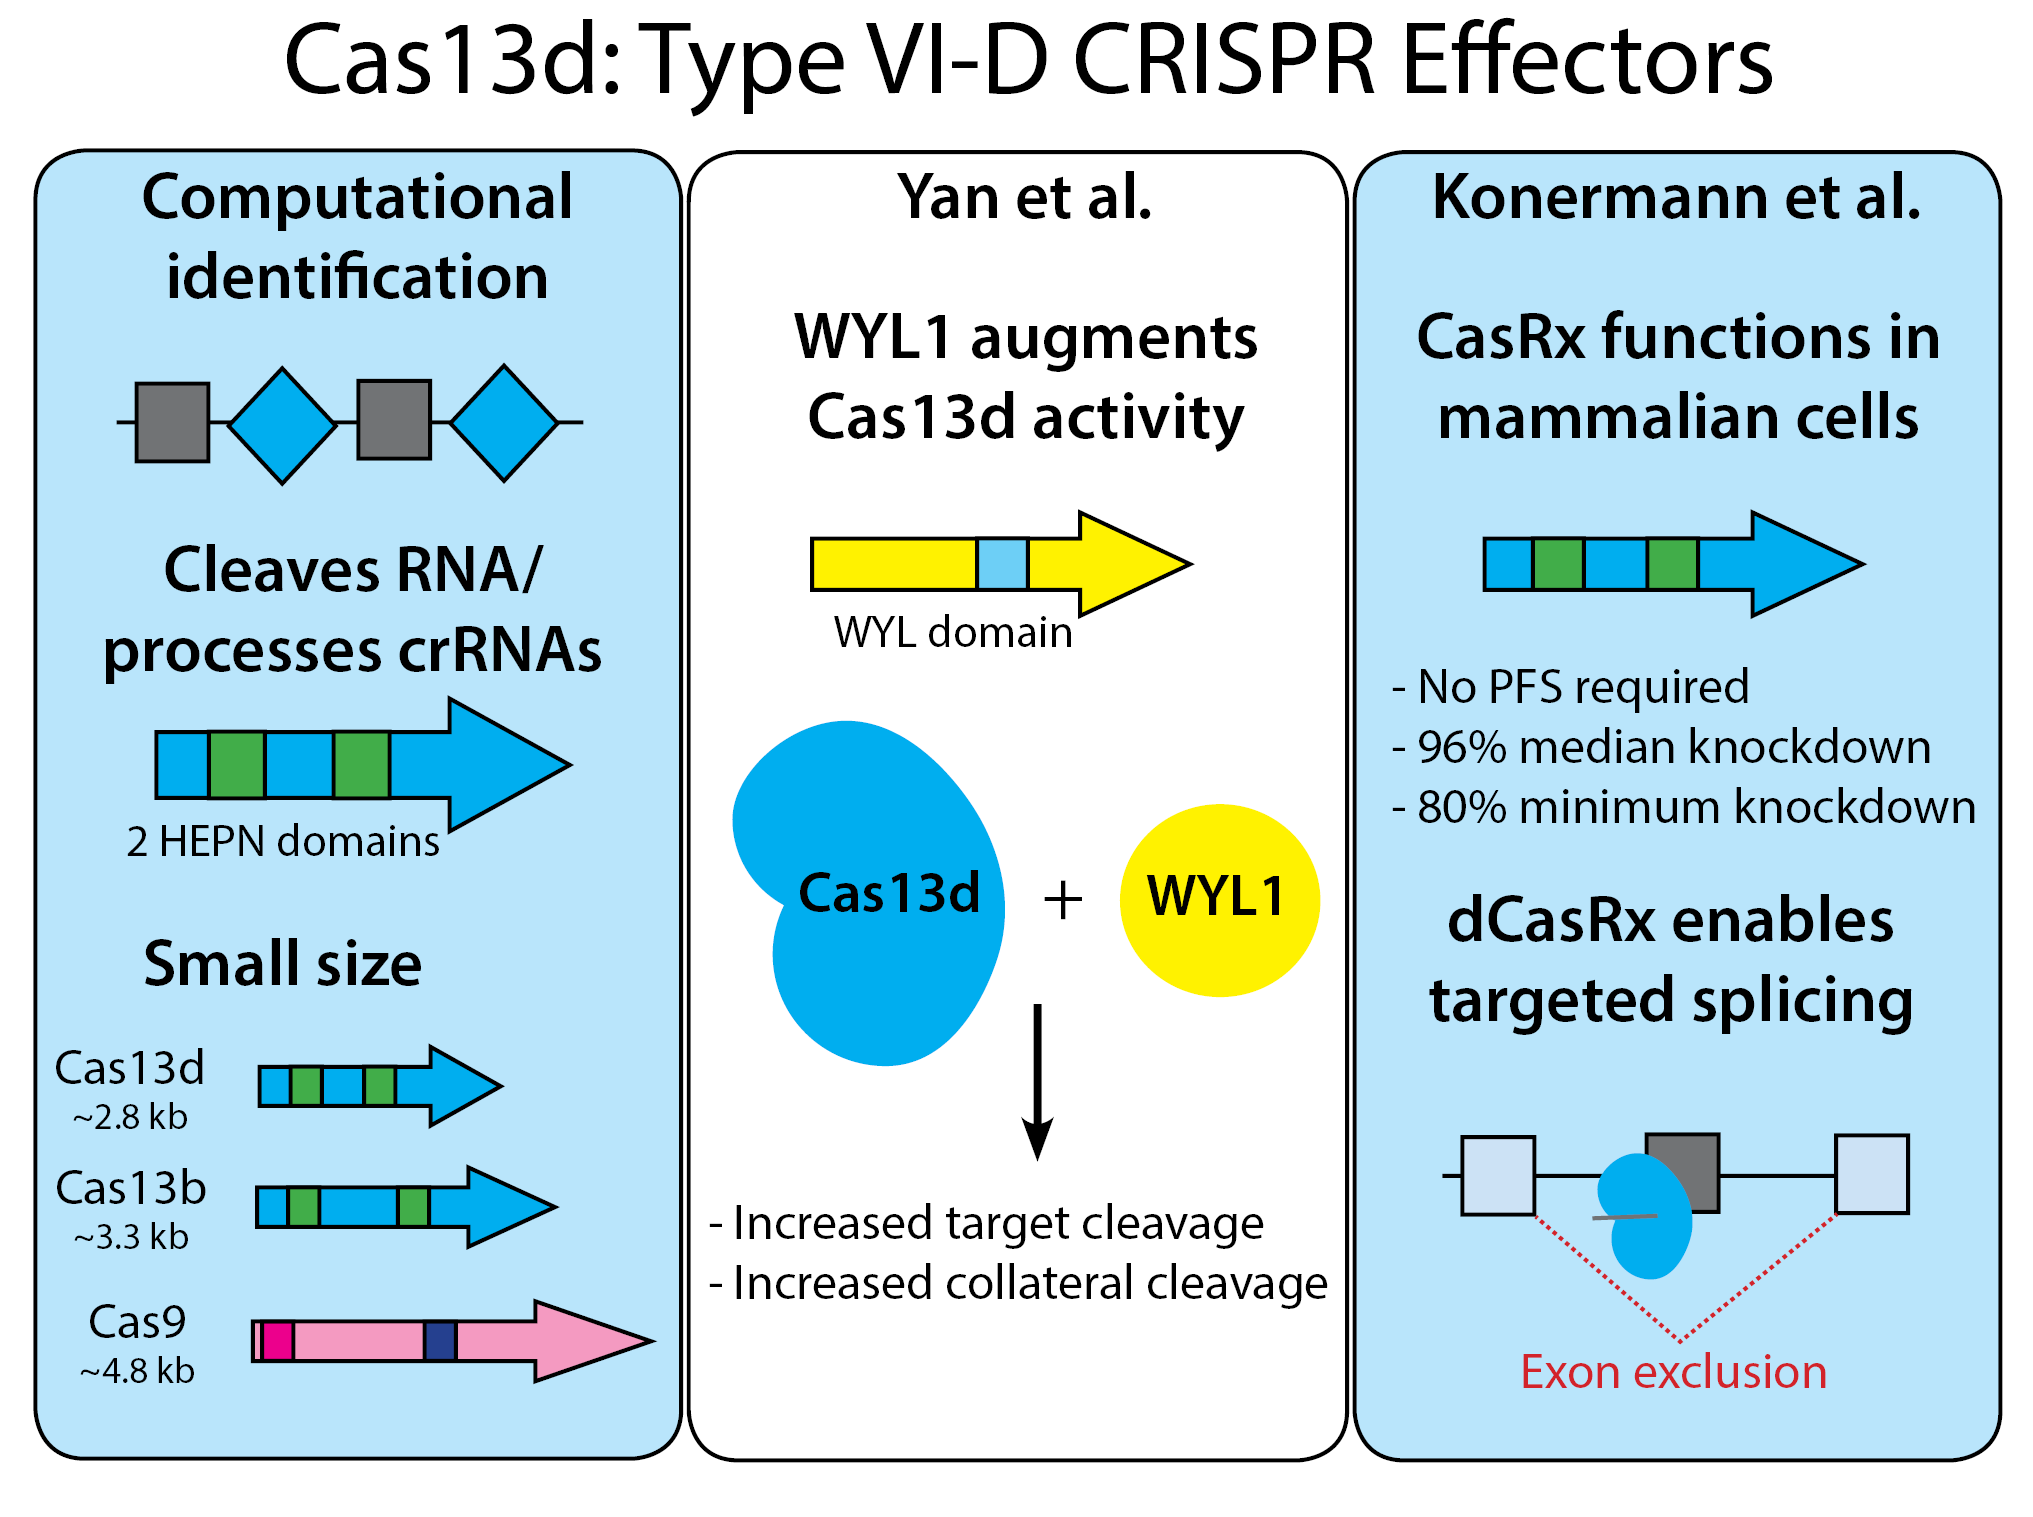 Schematic of Cas13d CRISPR effectors. The left of the graphic shows the small size of Cas13d at 2.8 kb, compared to Cas13b at 3.3 kb, and Cas9 at 4.8 kb. The Yan et al. paper describes Cas13d with the WYL1 domain to increase target cleavage and collateral cleavage. The Konermann et al. paper describes CasRx function in mammalian cells which does not require PFS, and results in 96% median knockdown and 80% minimum knockdown. dCasRx enables targeted splicing to exclude exons.